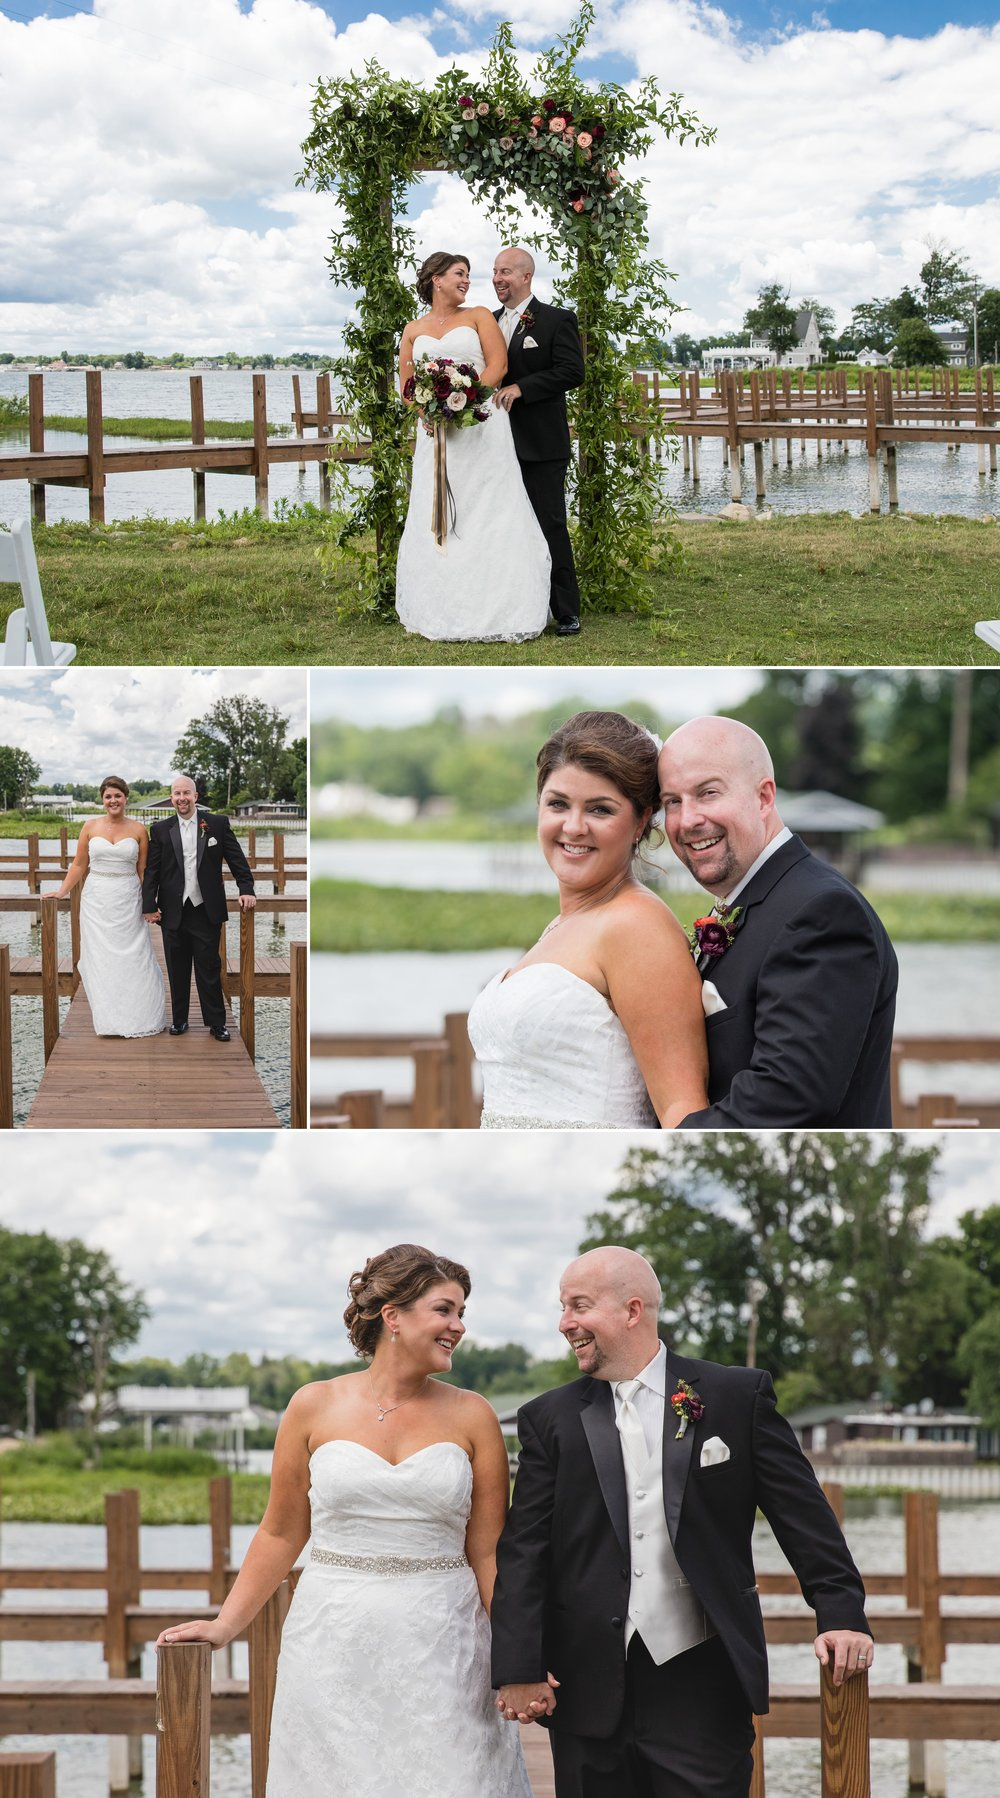 005-Buckeye-lake-winery-wedding-couple-wedding-party-portraits-columbus-ohio-wedding-muschlitz-photography-03.JPG